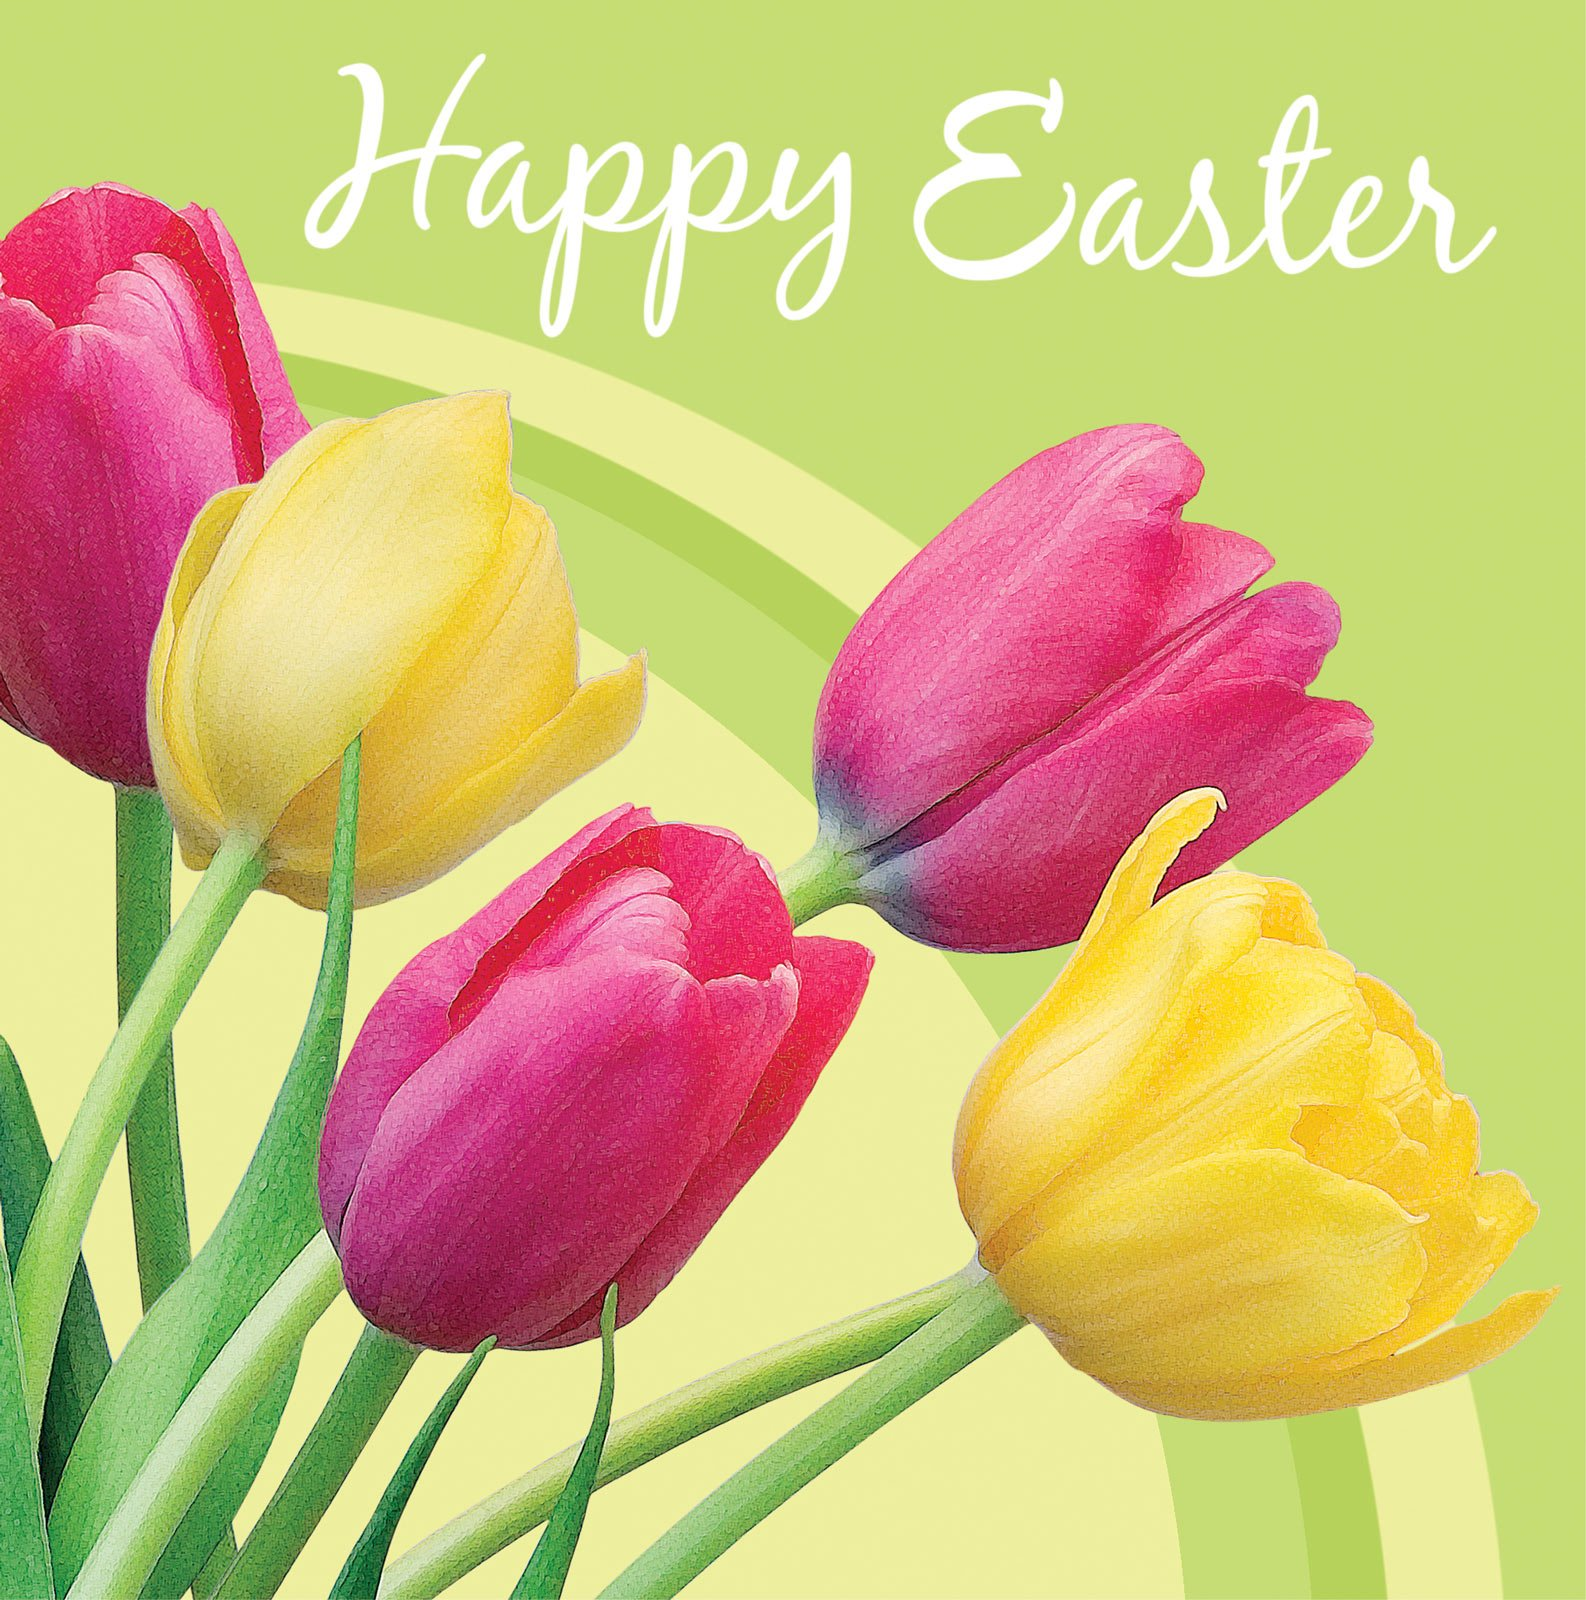 Happy Easter Desktop Backgrounds 1586x1600